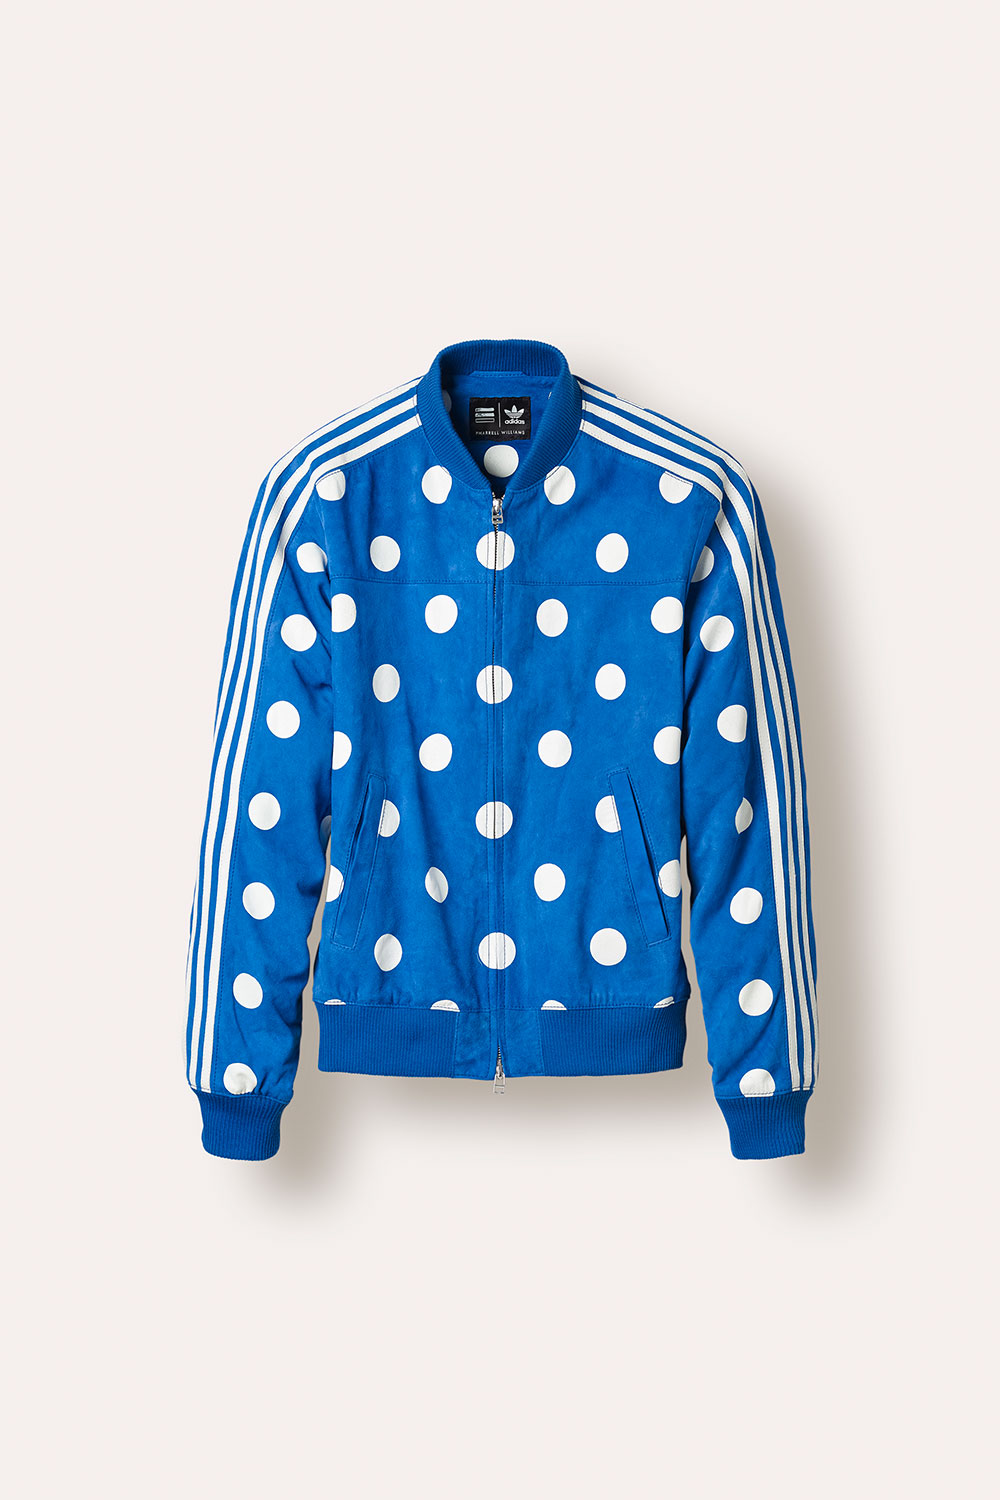 Pharrell × adidas Originals Consortium Big Polka Dots Pack